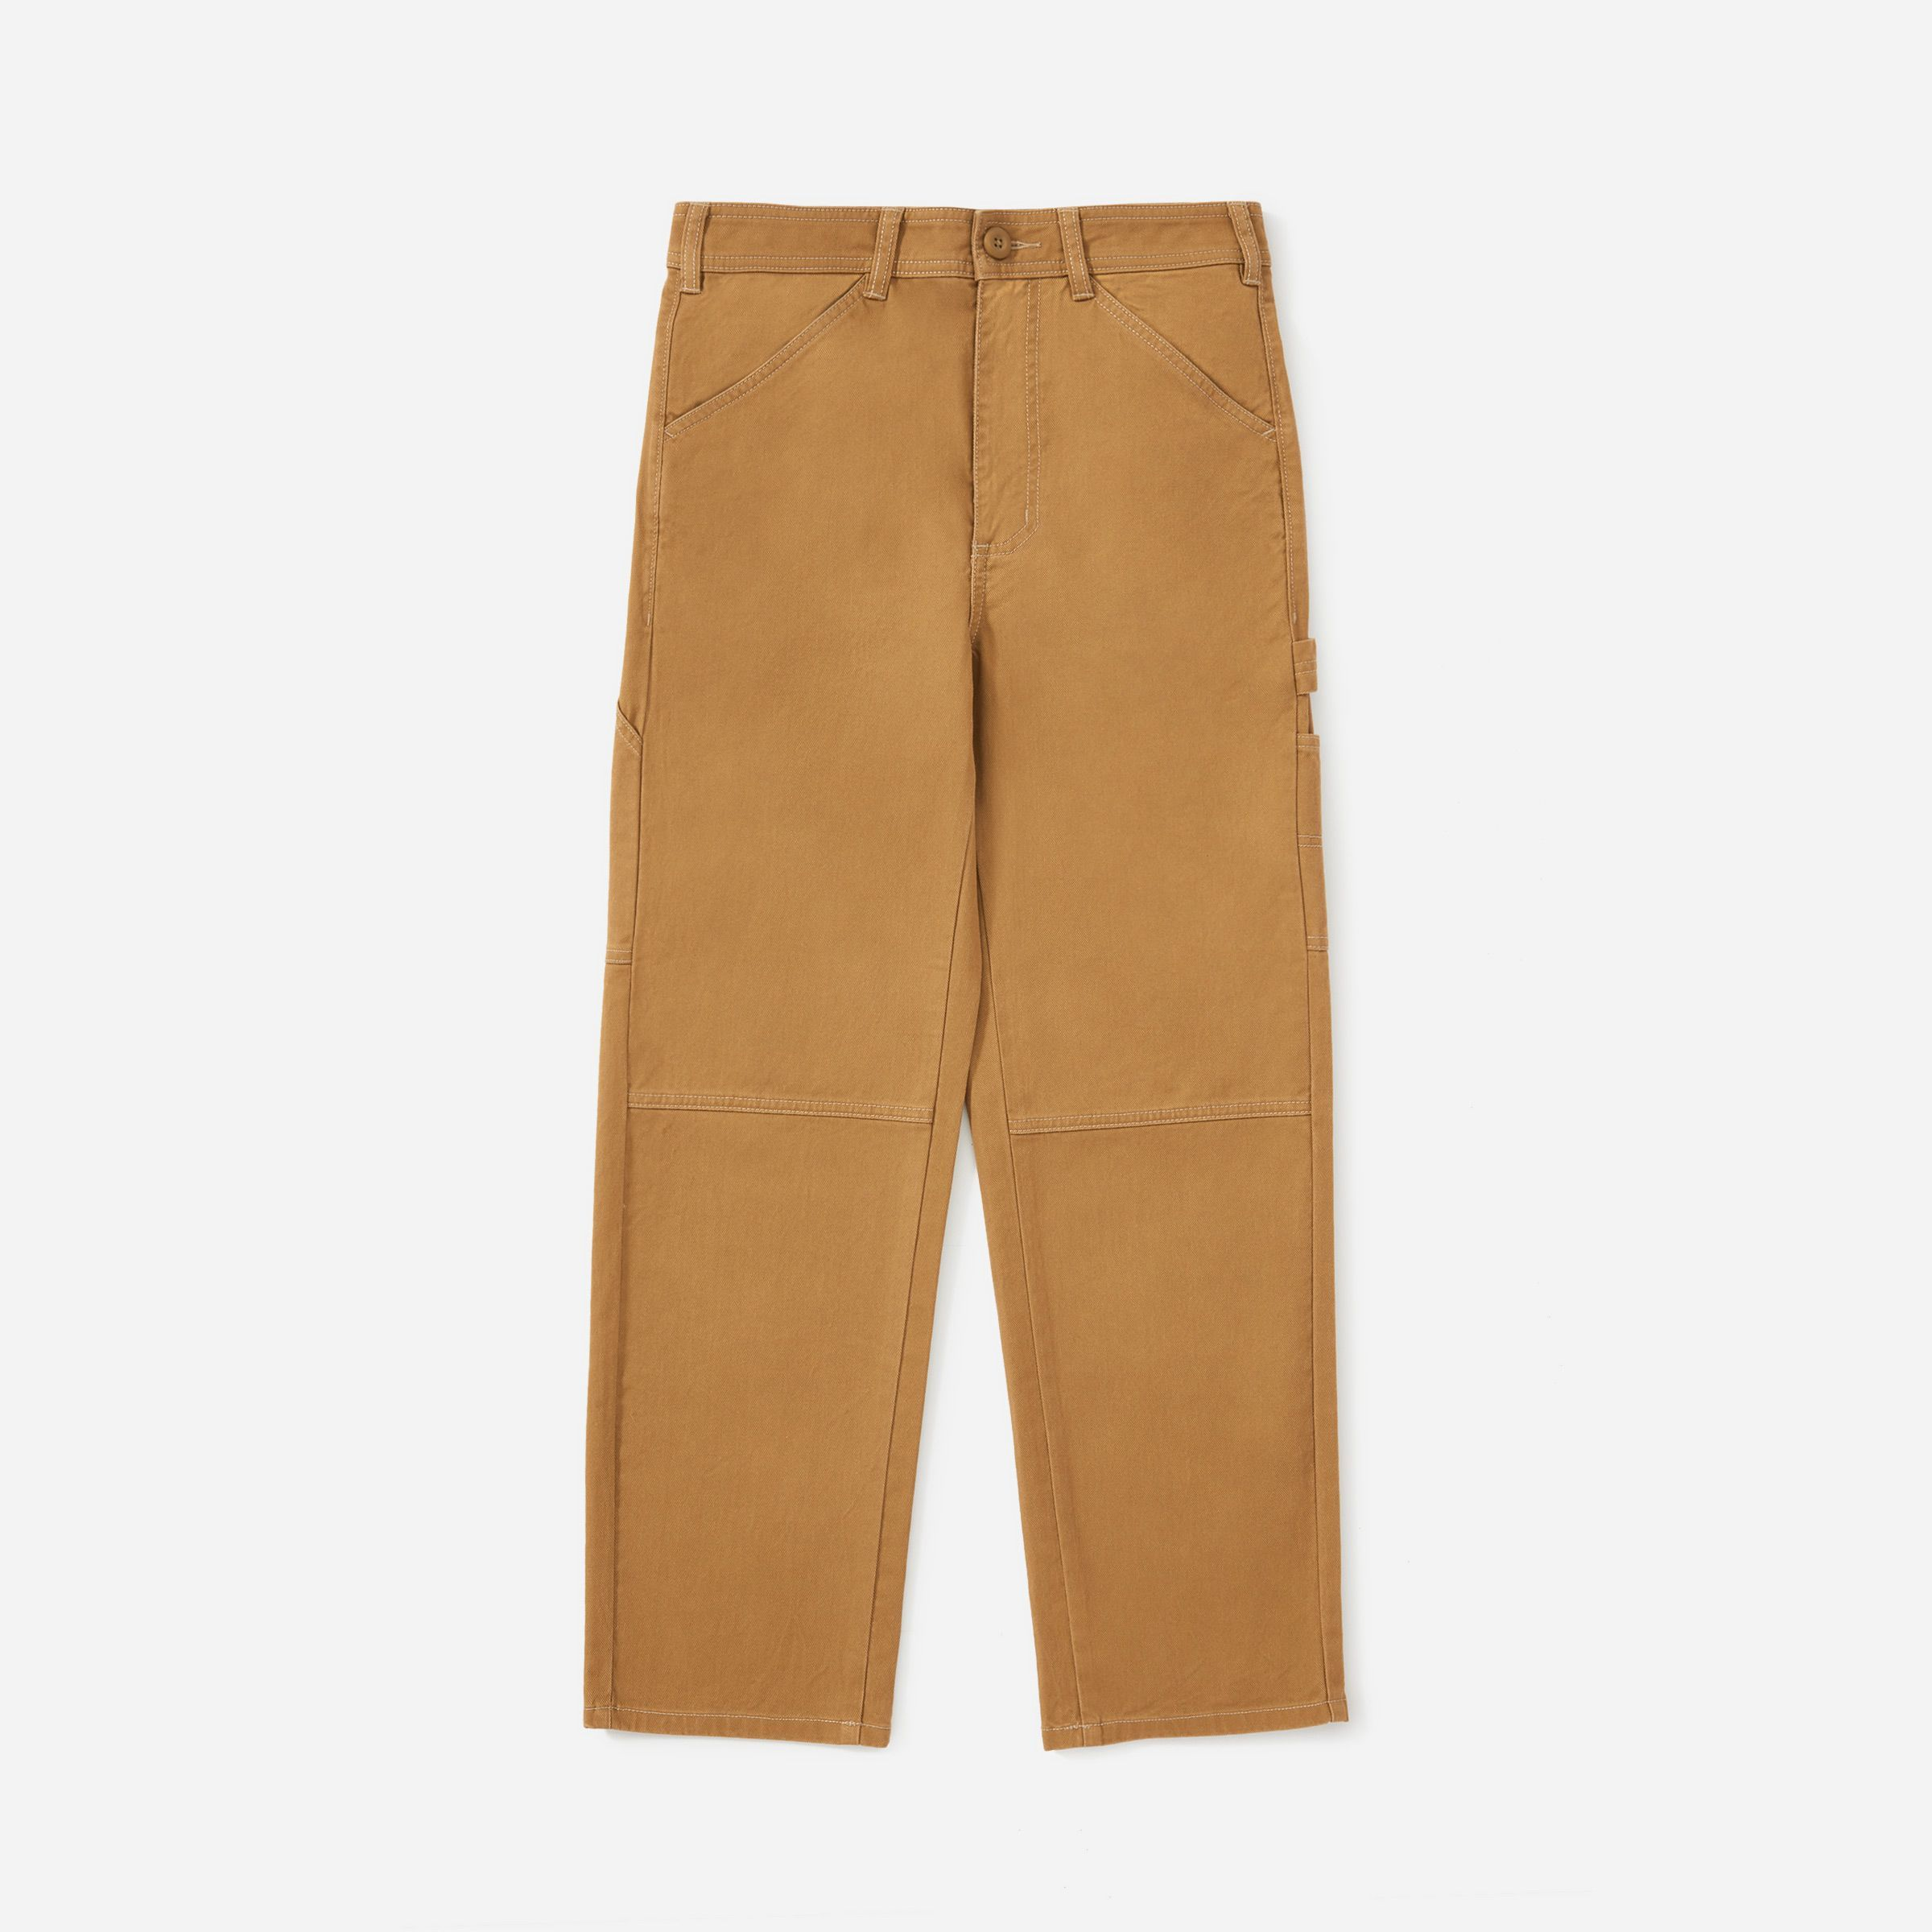 The Carpenter Pant everlane everlane.com $68.00 SHOP NOW Ever wondered how much it costs to make your favorite Everlane Cashmere sweater? Just look at Everlane's site, which provides customers with a breakdown of the production process, from materials to labor and transportation.